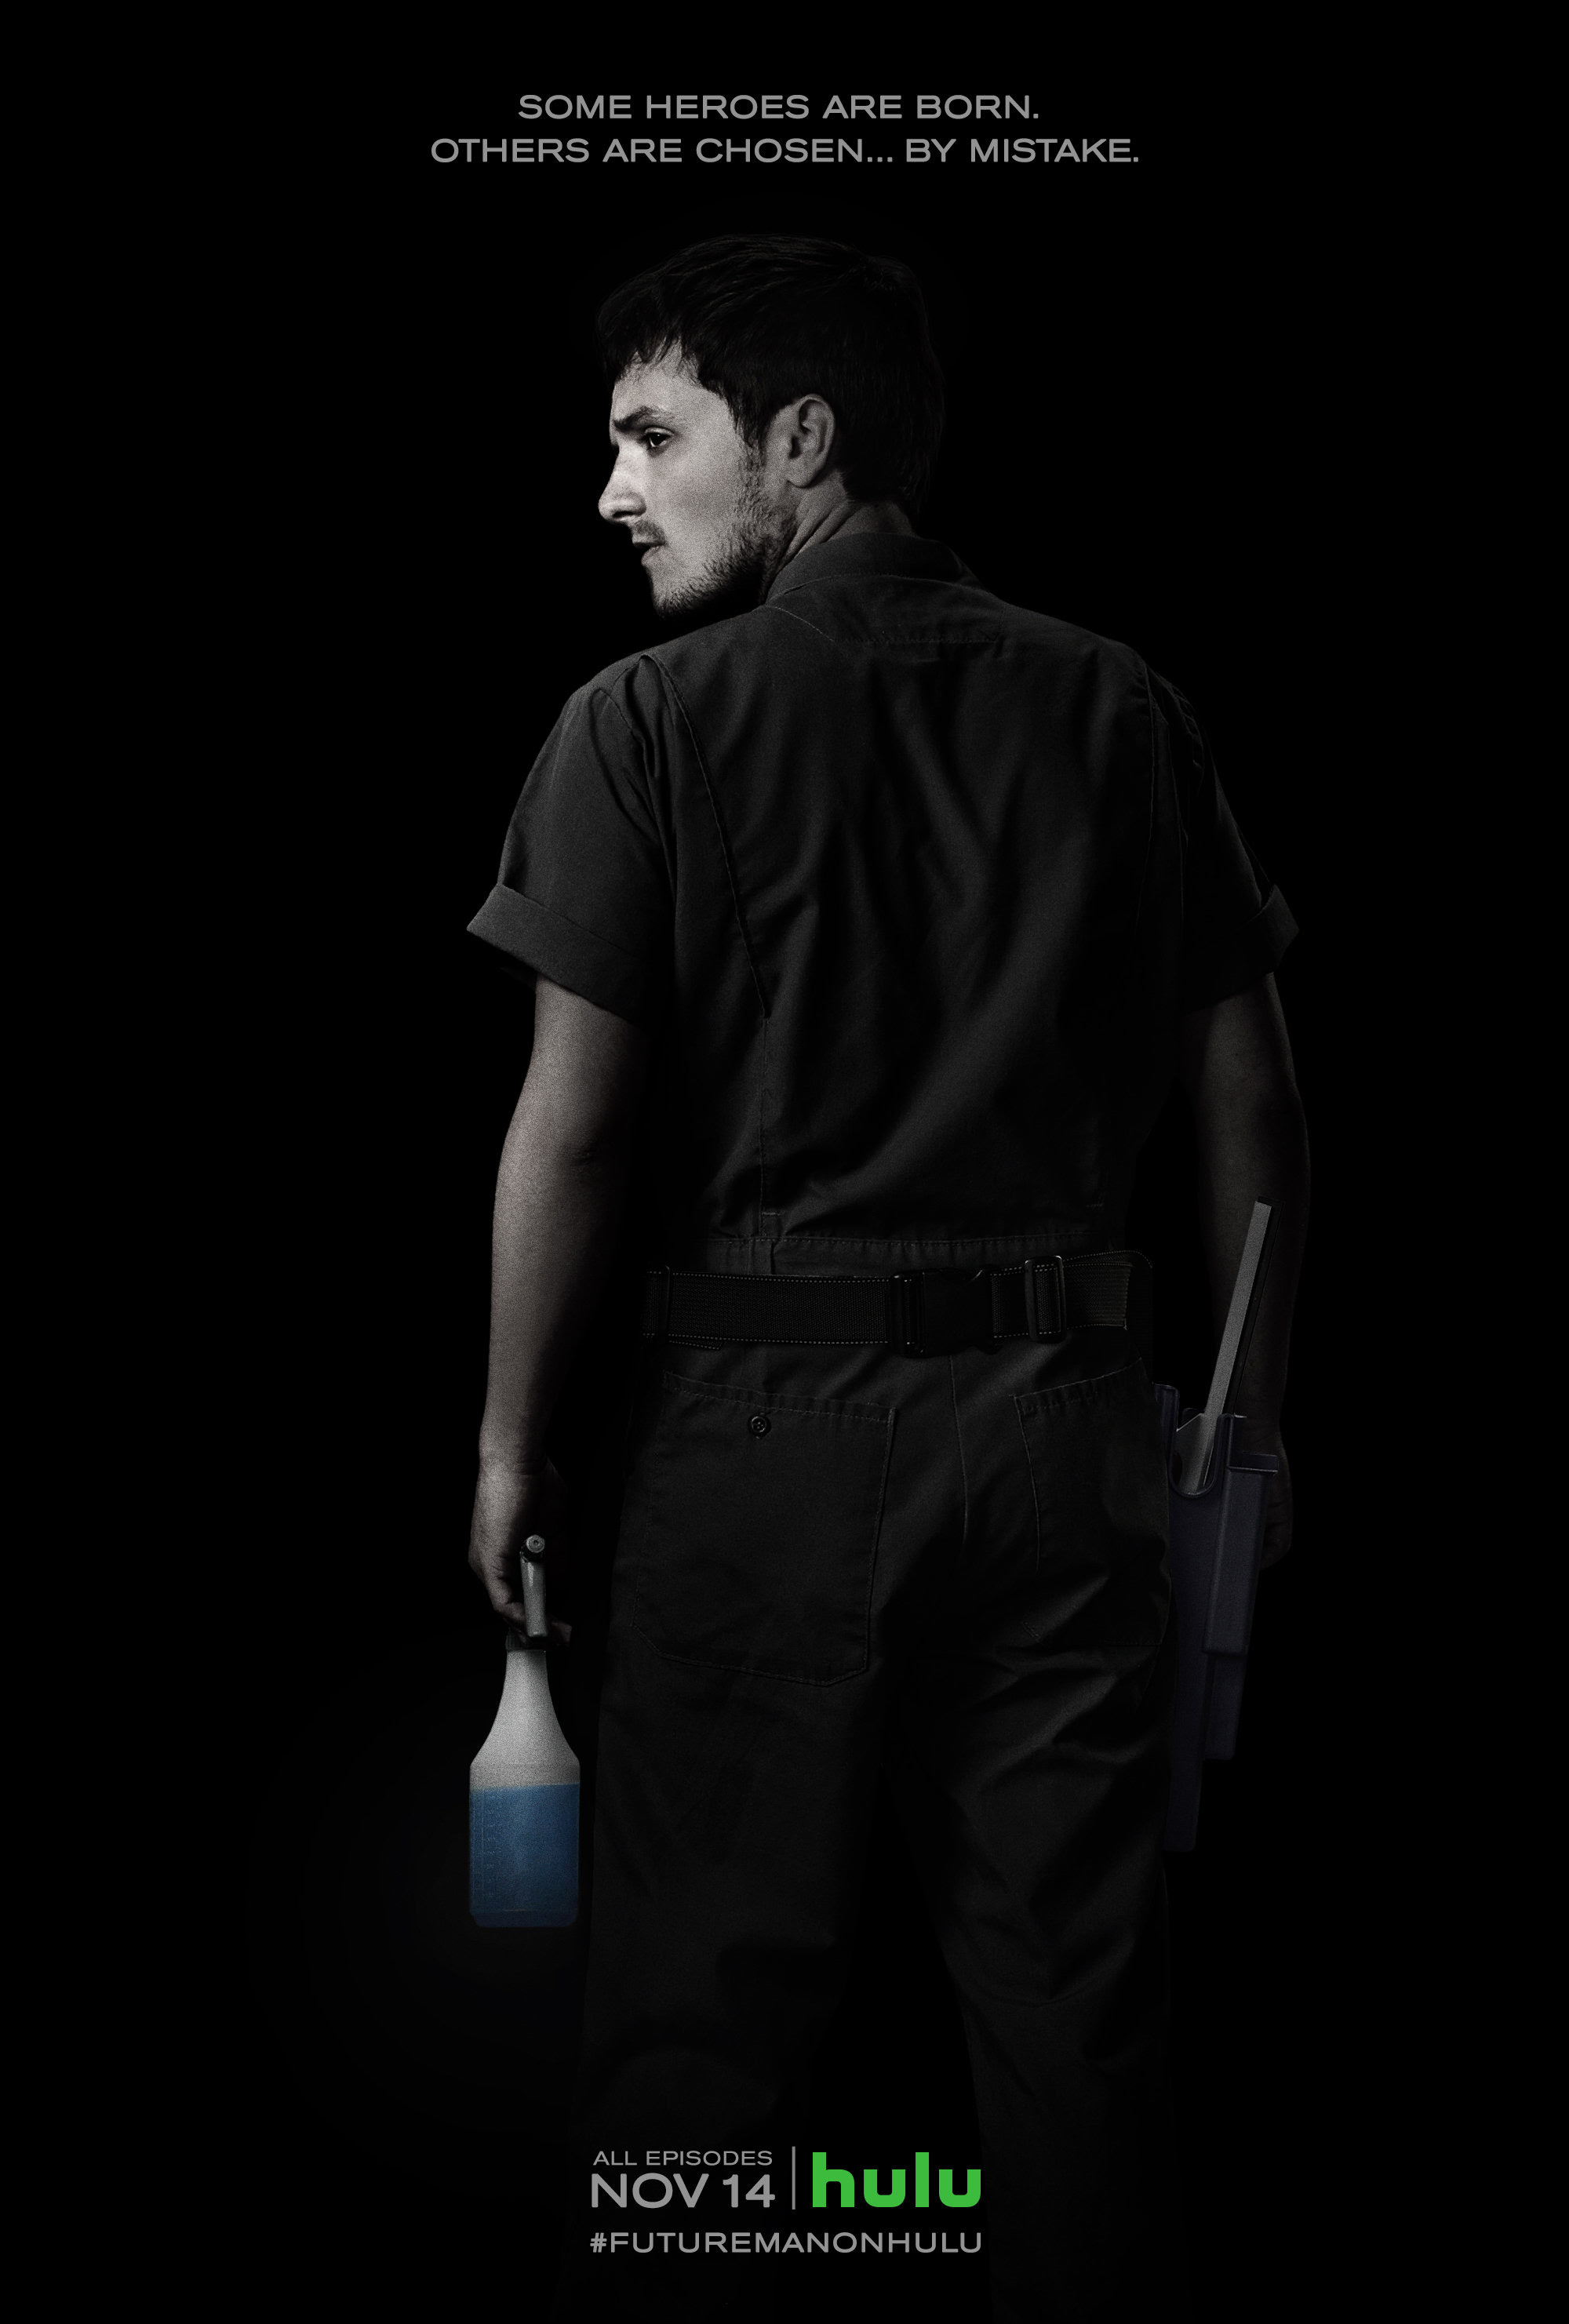 josh-hutcherson-plays-a-janitor/gamer-who-travels-through-time-to-save-humanity-in-funny-trailer-for-future-man1